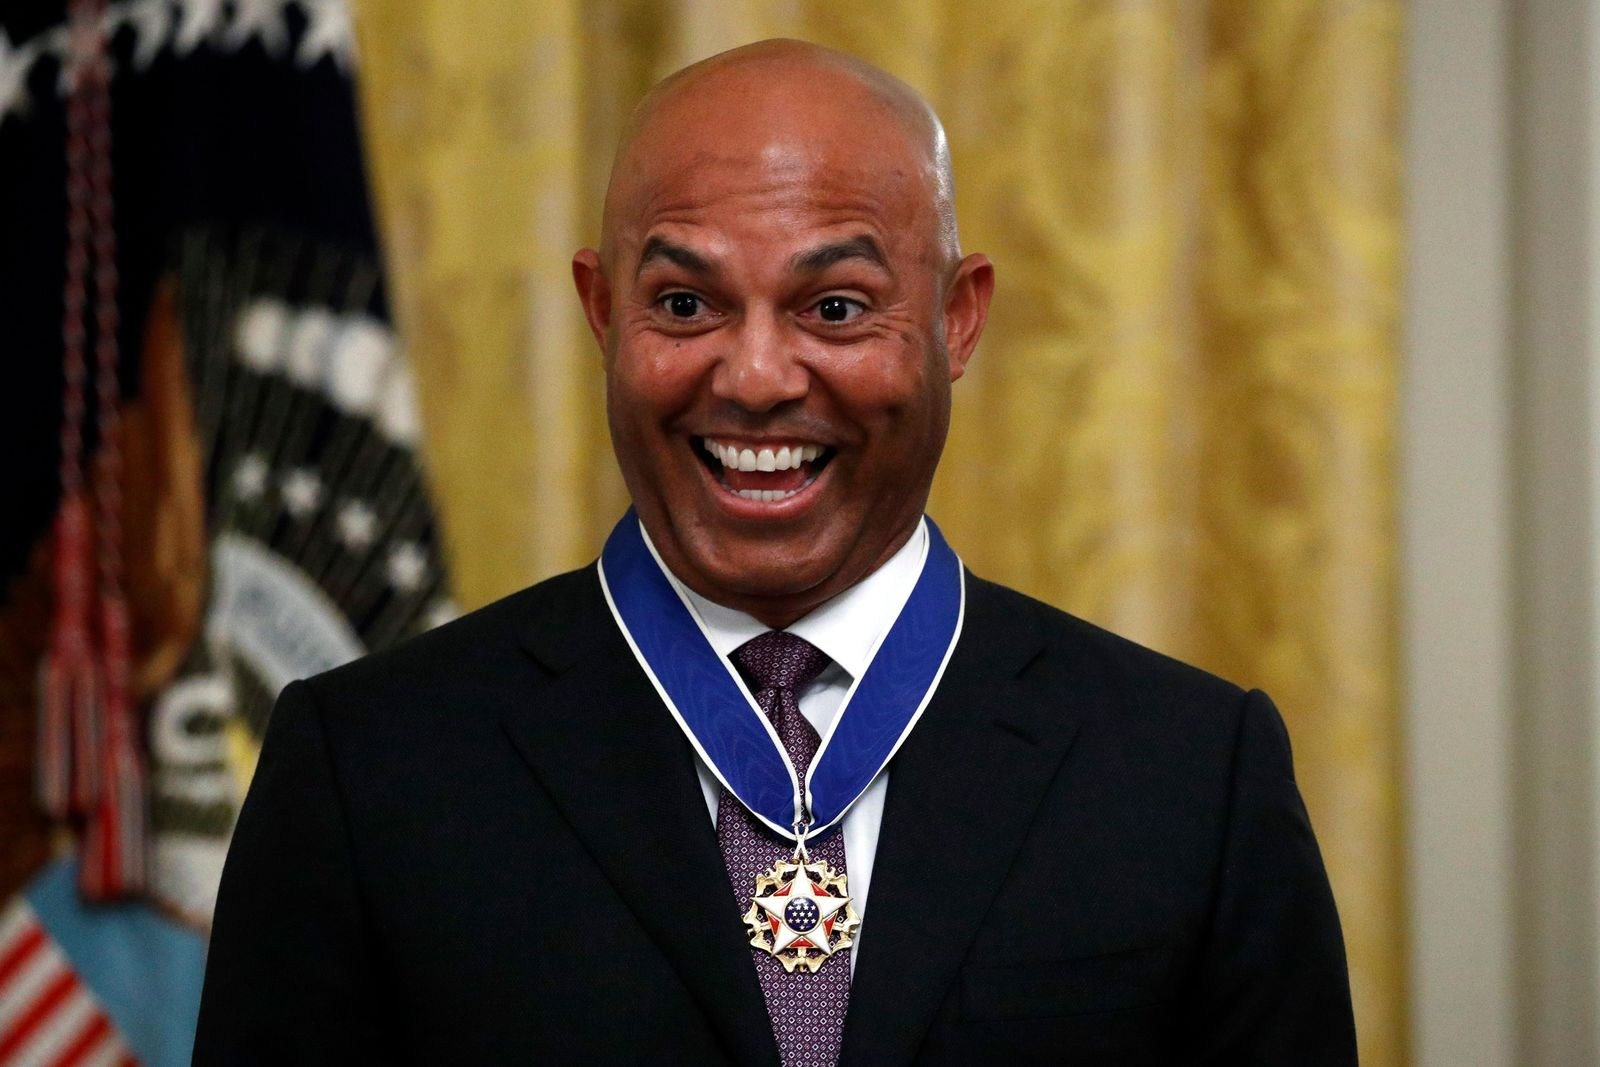 Former New York Yankees baseball pitcher Mariano Rivera smiles after being presented the Presidential Medal of Freedom by President Donald Trump in the East Room of the White House, Monday, Sept. 16, 2019, in Washington. (AP Photo/Patrick Semansky)